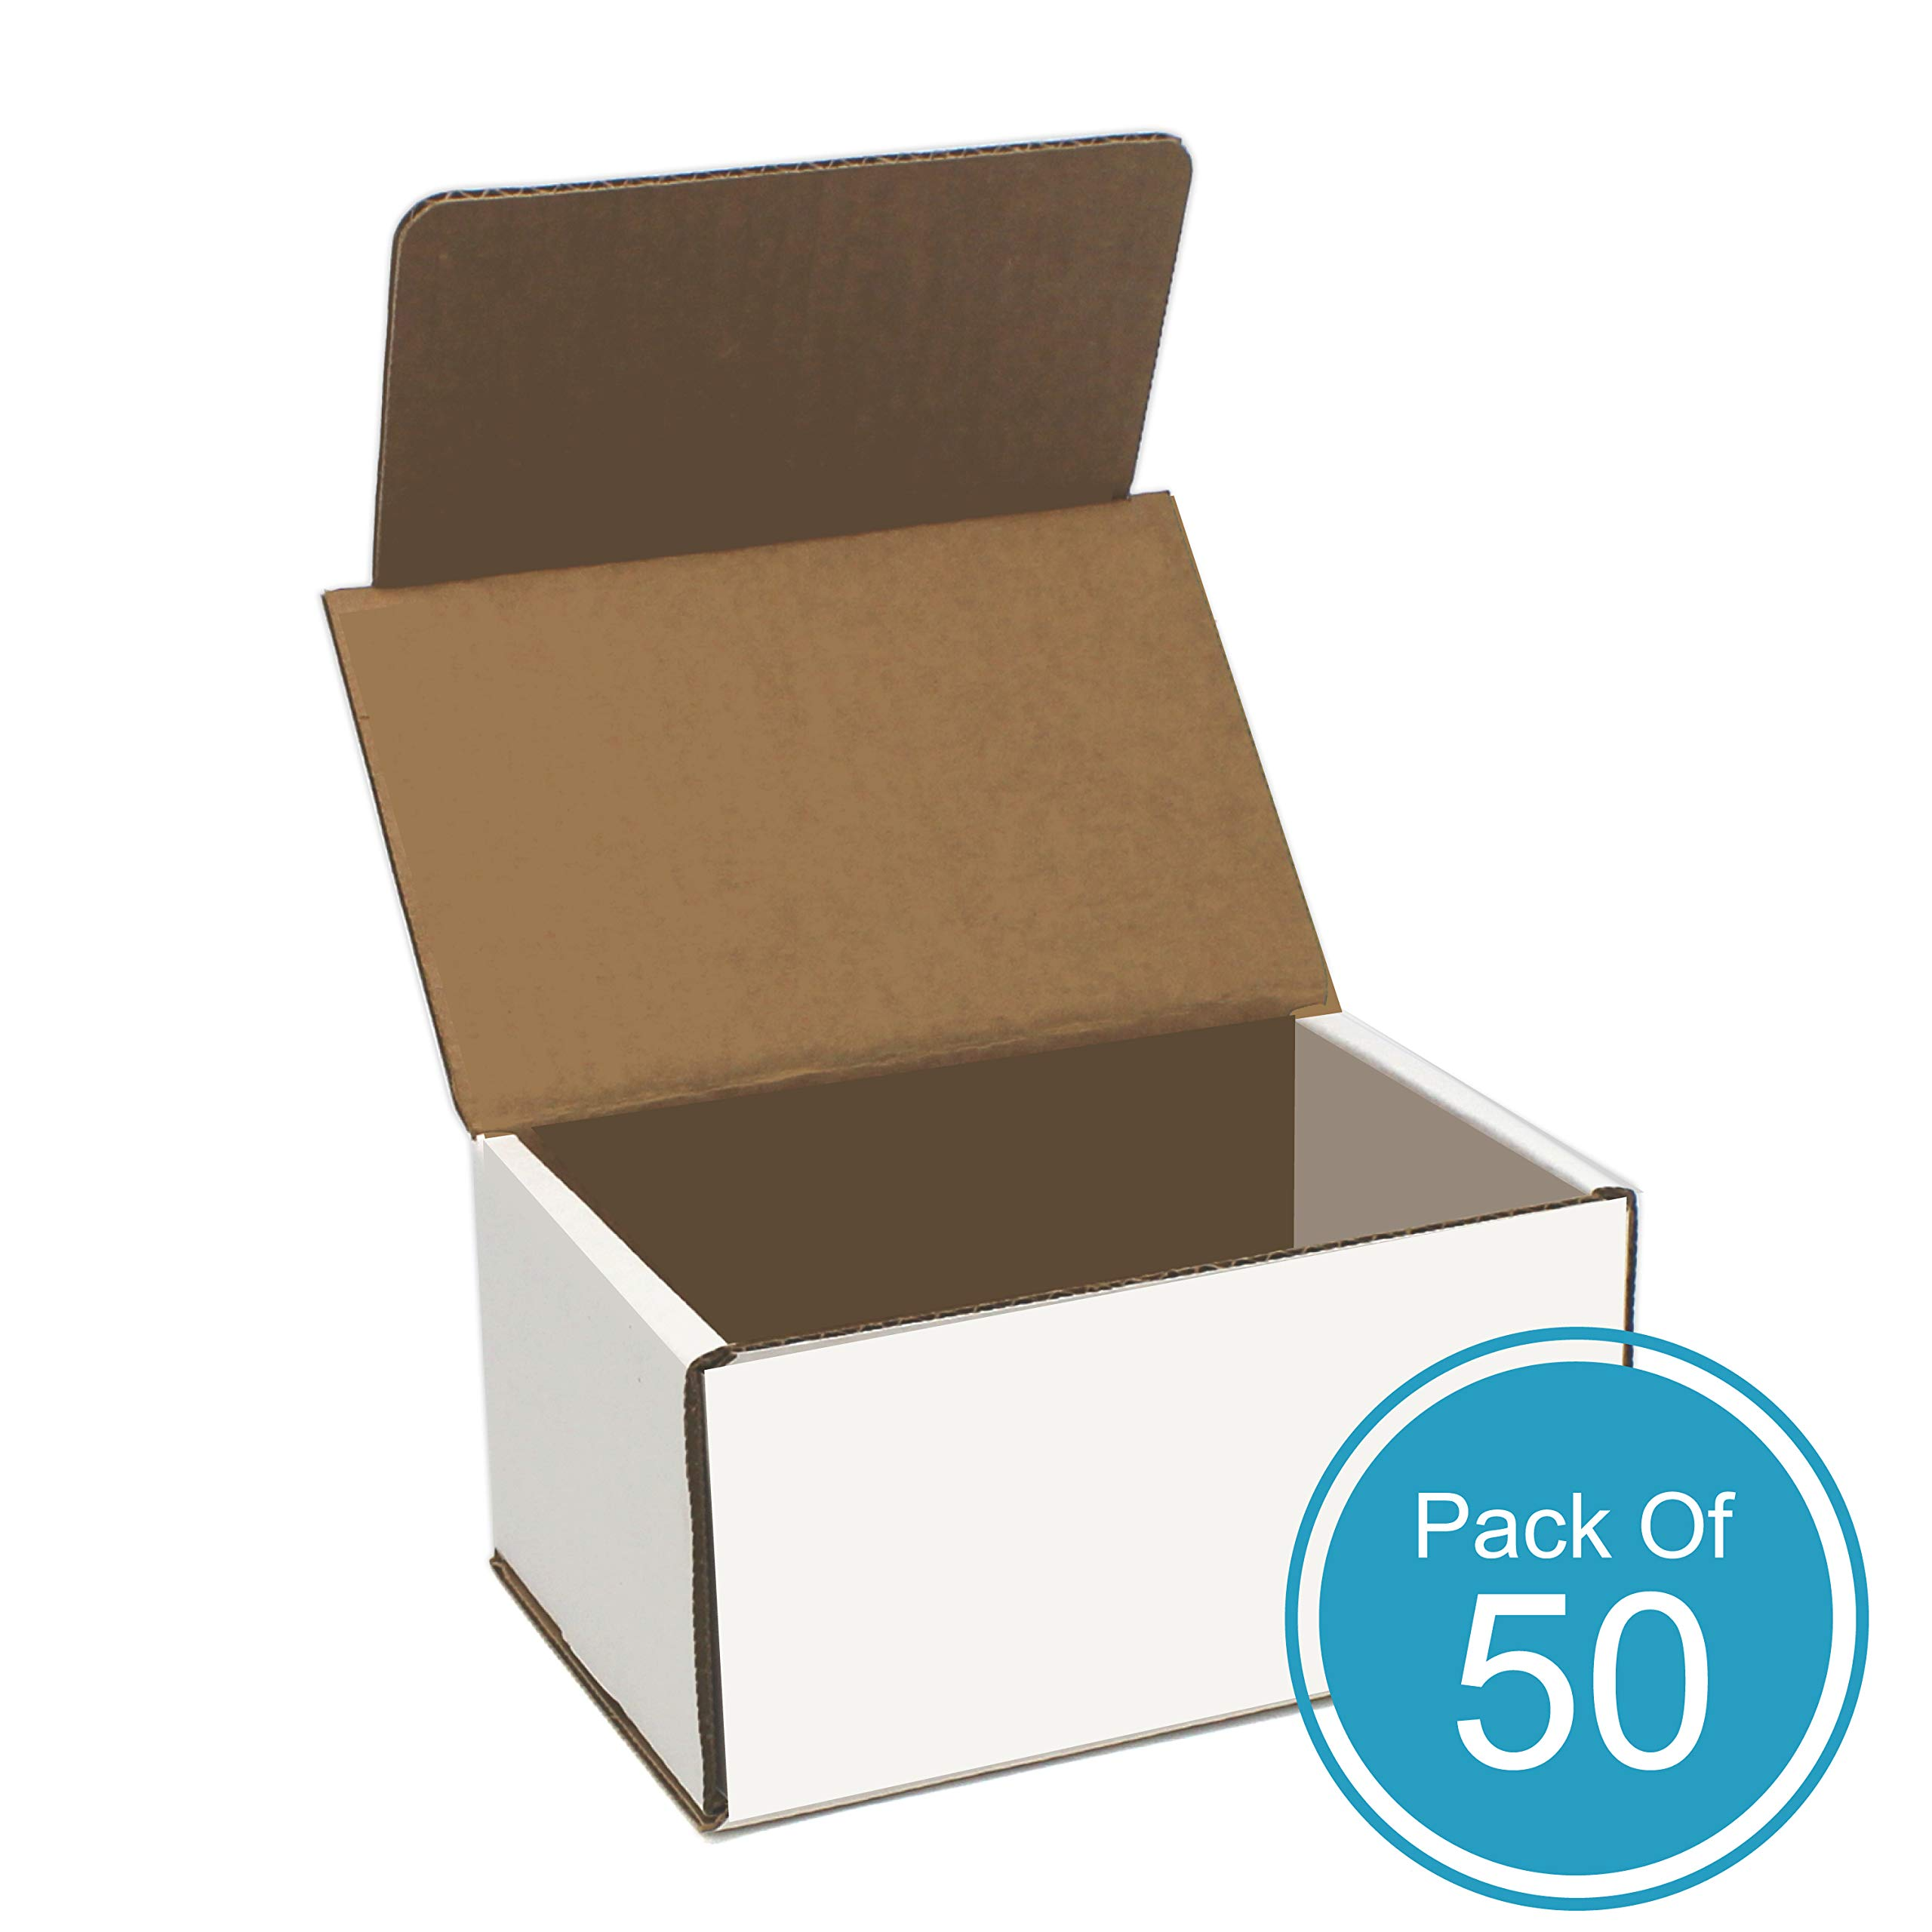 HTTP White Cardboard Shipping Boxes, 6L x 4W x 3H, White Corrugated, Pack of 50 Small Cardboard Boxes